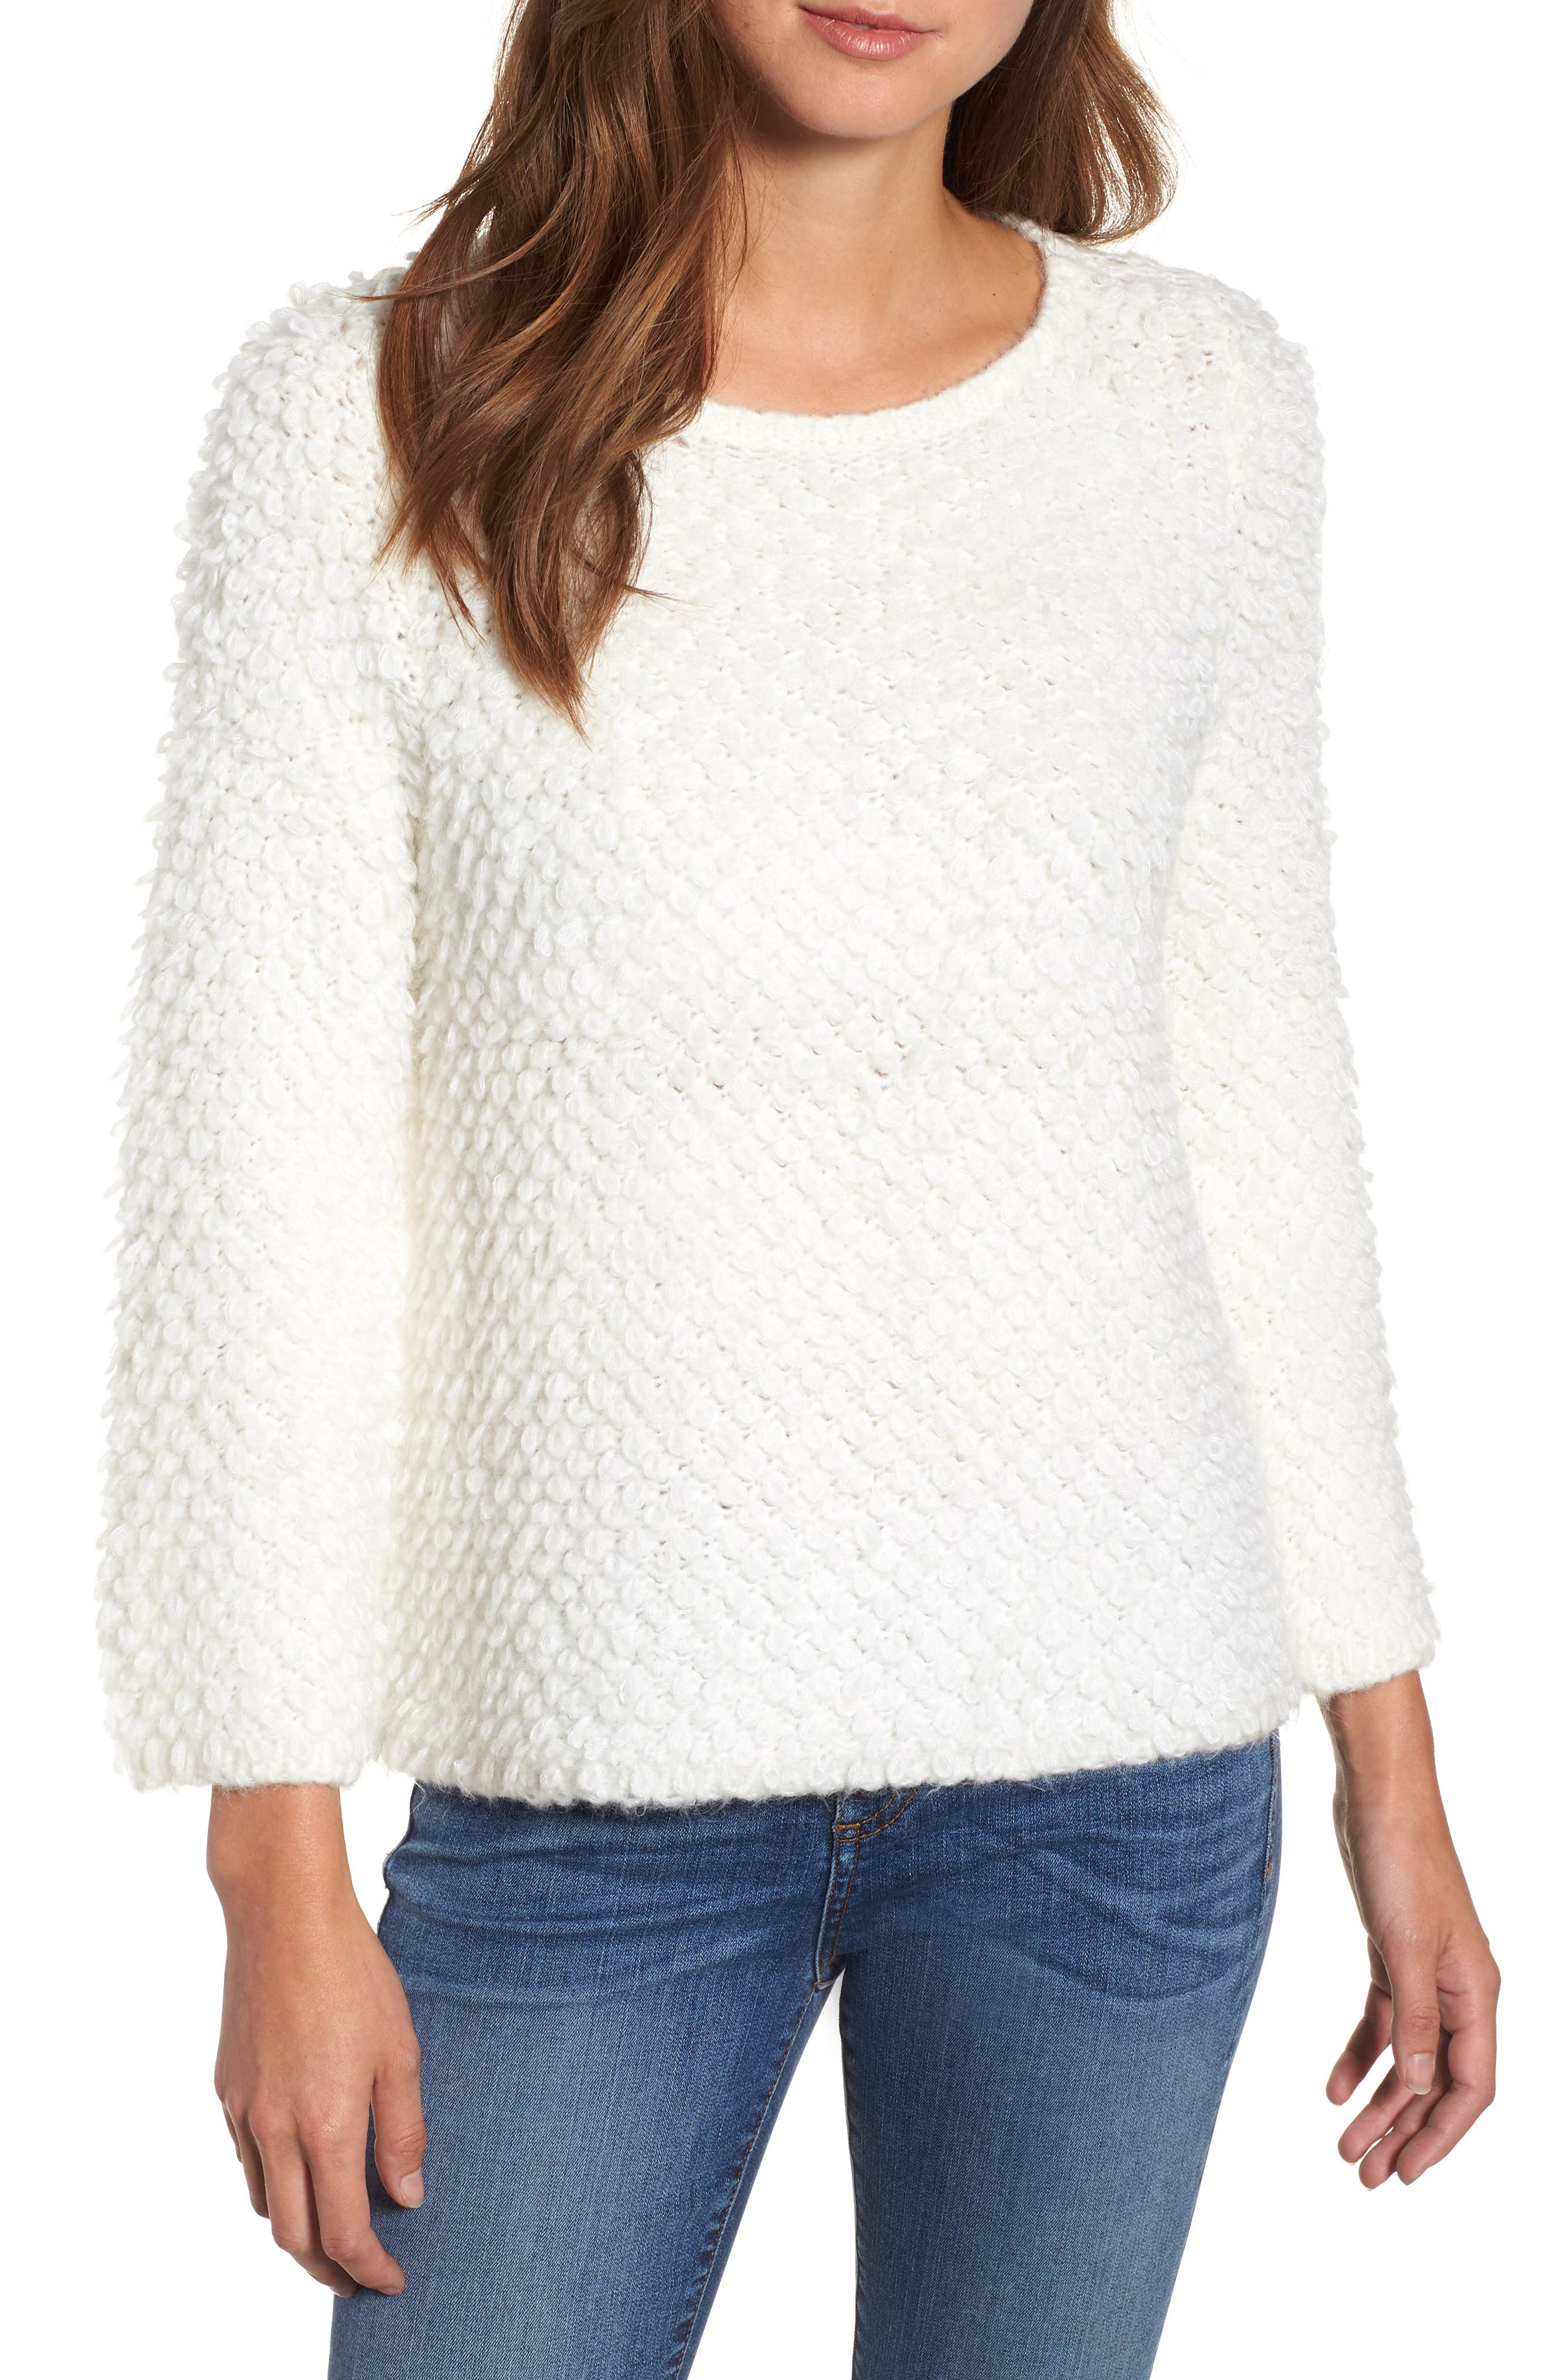 Loop Stitch Crewneck Sweater,                         Main,                         color, 901